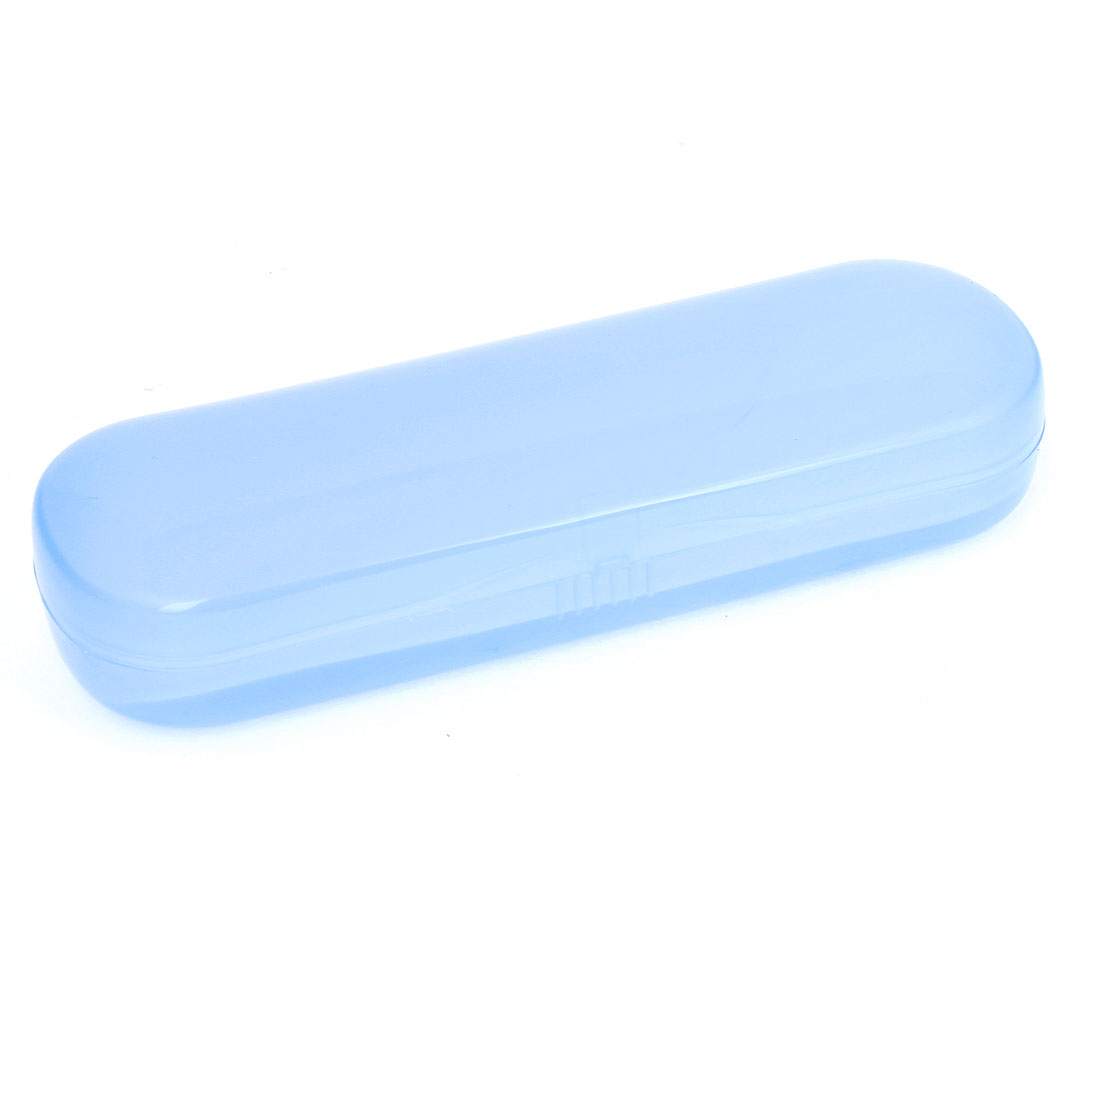 Oval Rectangle Hard Plastic Eyeglasses Case Box Container Light Blue